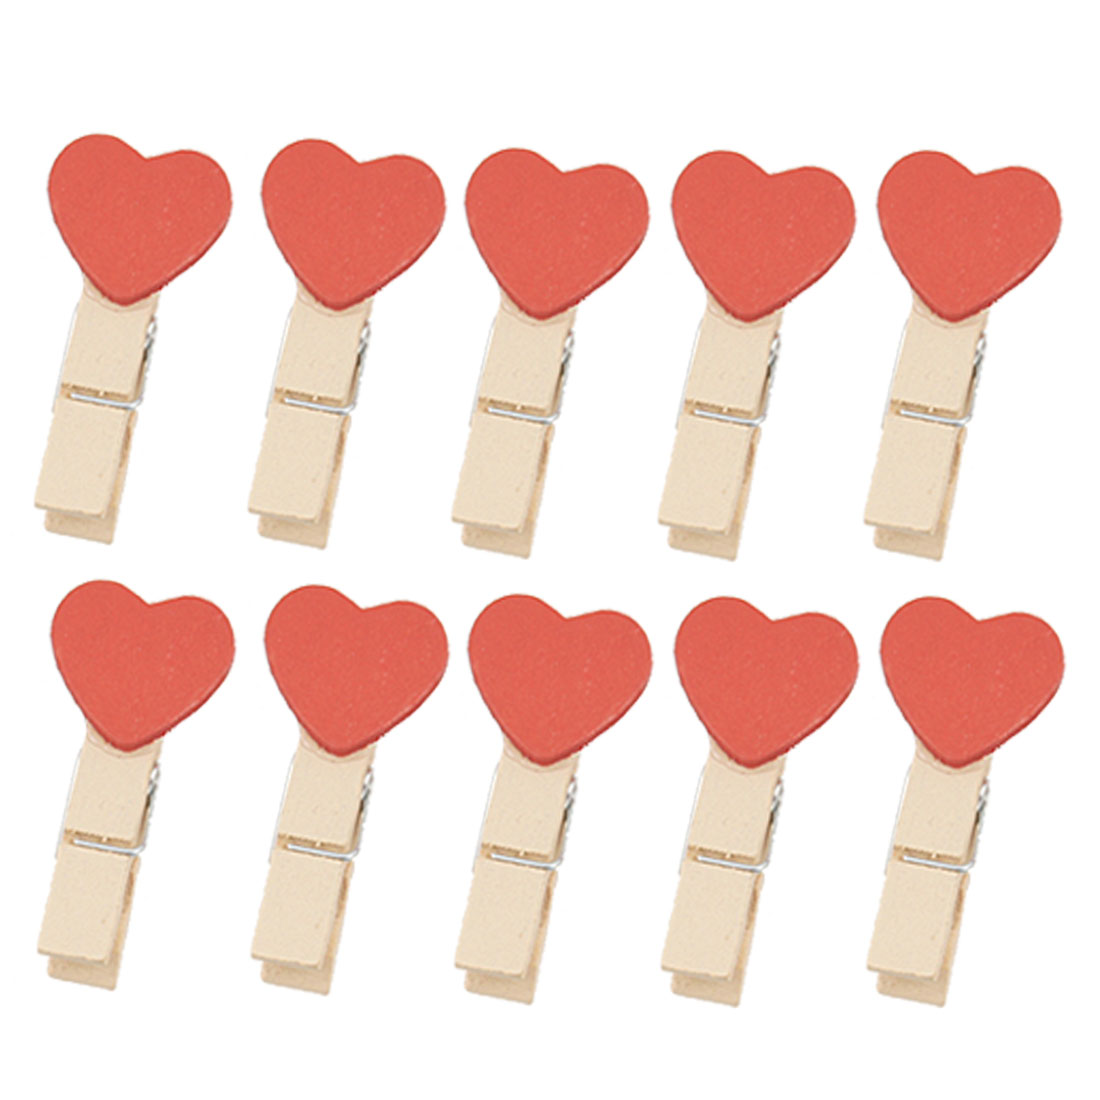 10 Pcs Red Heart Wooden Spring Clothespins Memo Clips w String